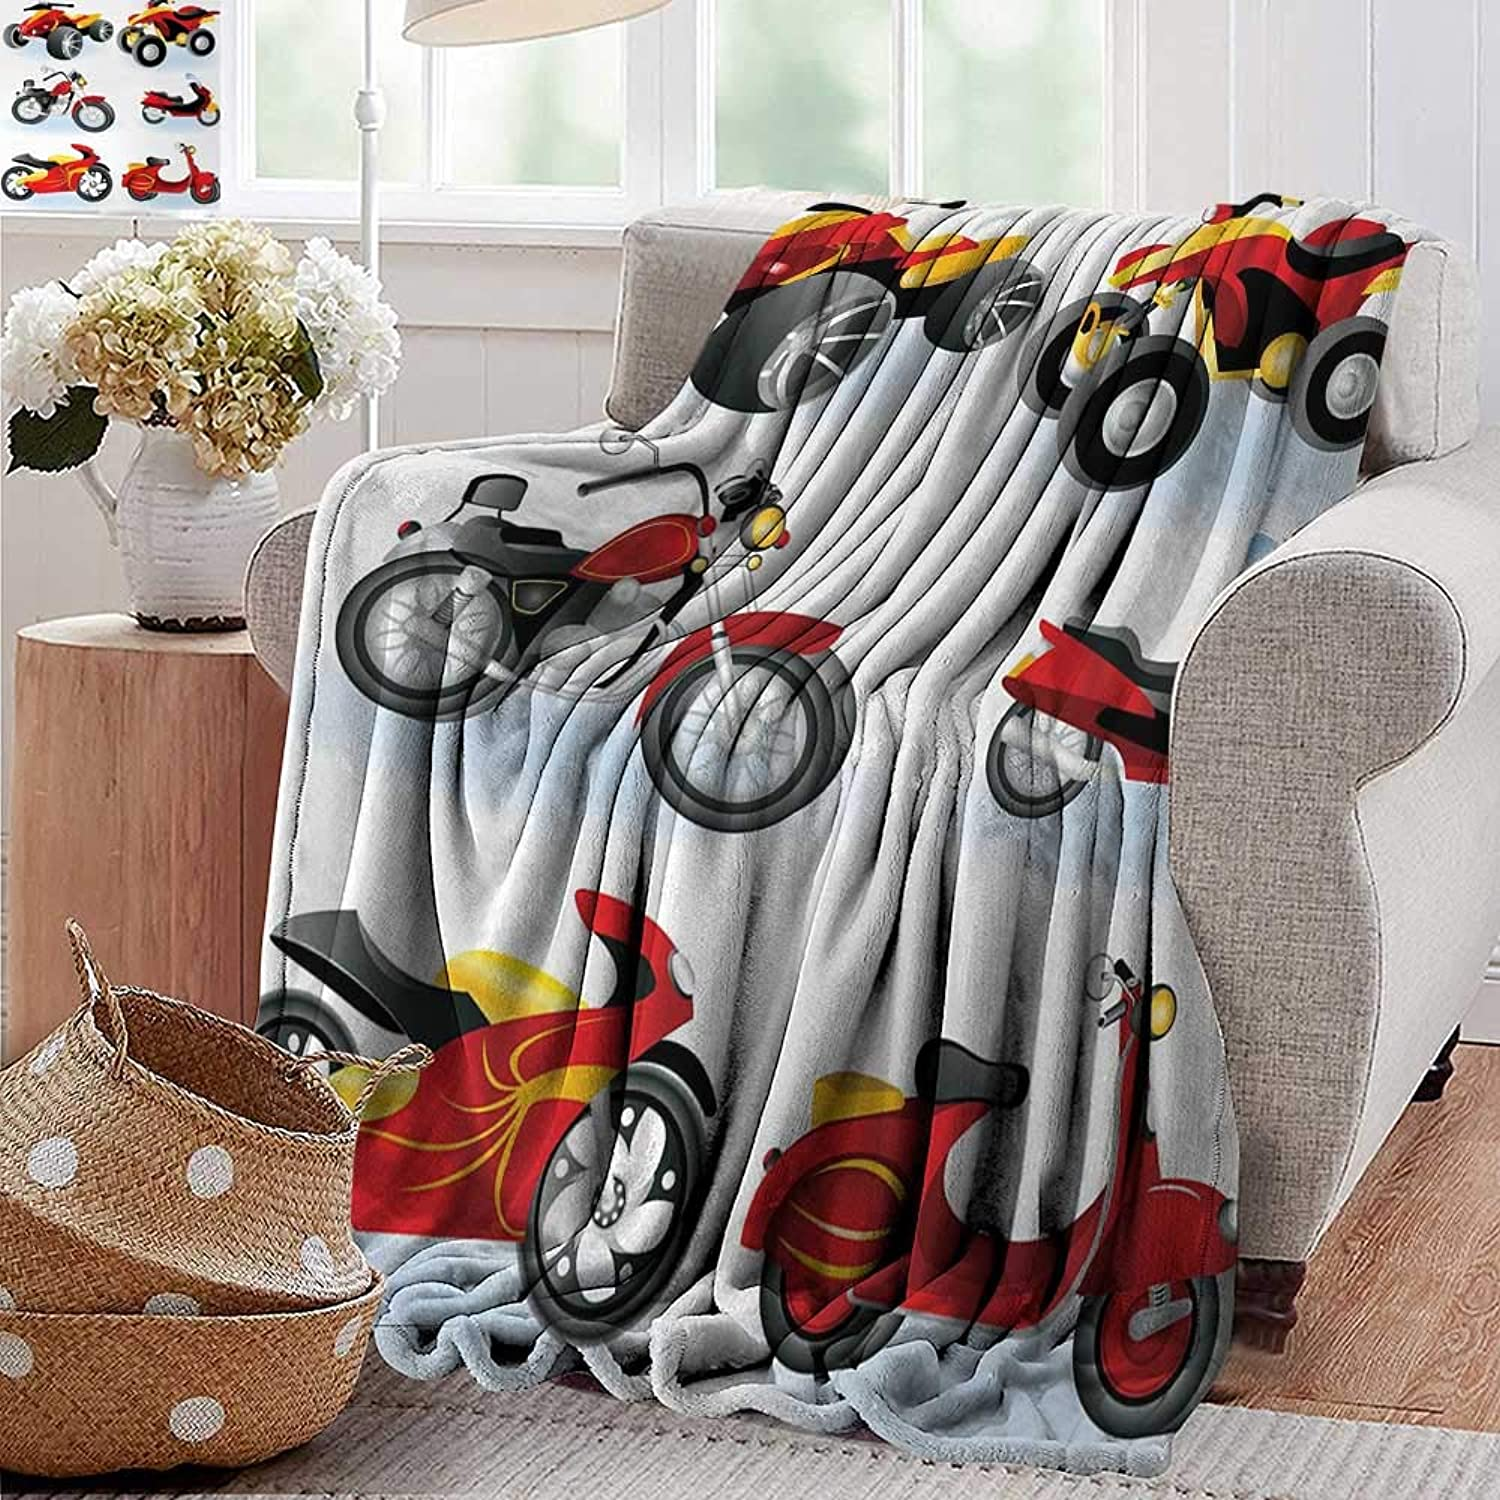 Weighted Blanket for Kids,Motorcycle,Motorcycle Icons Sportsman Competition Amusement Leisure Cartoon Illustration,Black Yellow,Weighted Blanket for Adults Kids, Better Deeper Sleep 50 x70